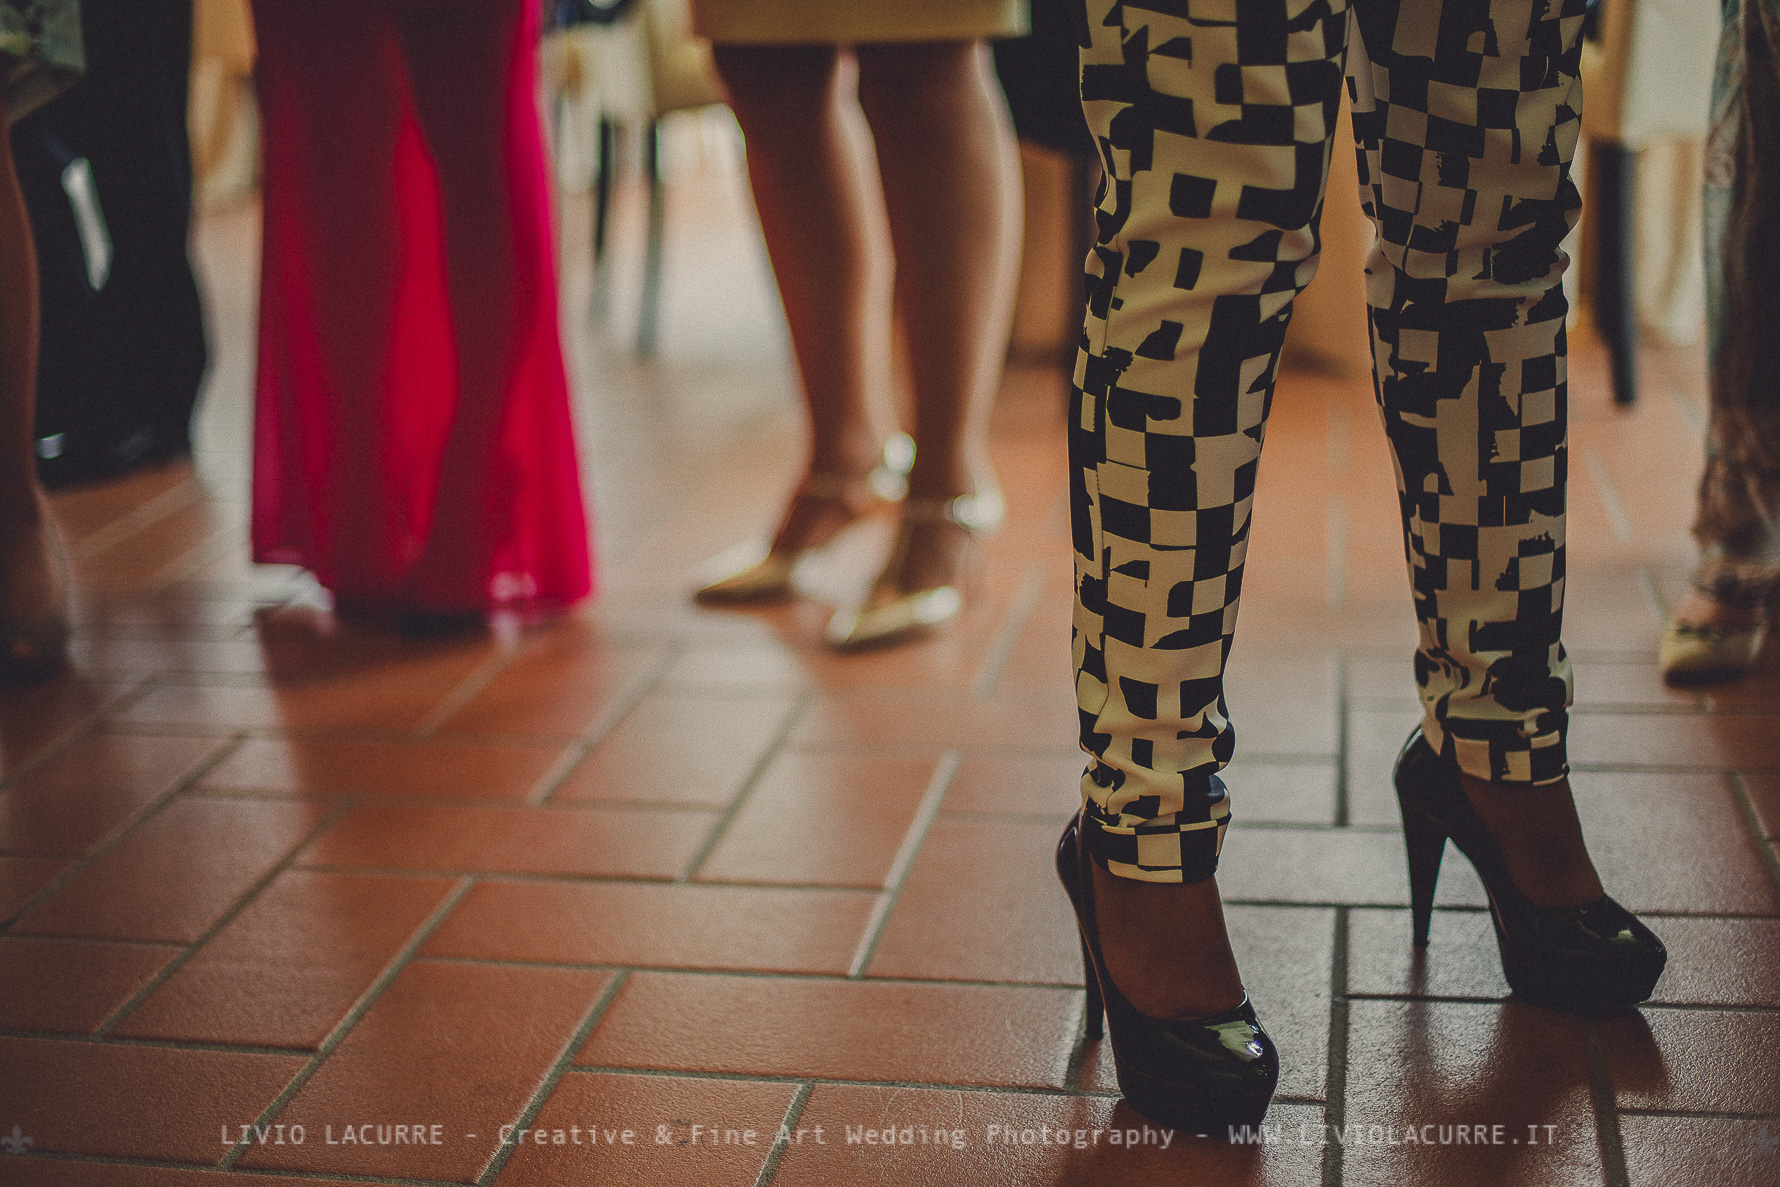 sony a7II in action - real wedding - photography service